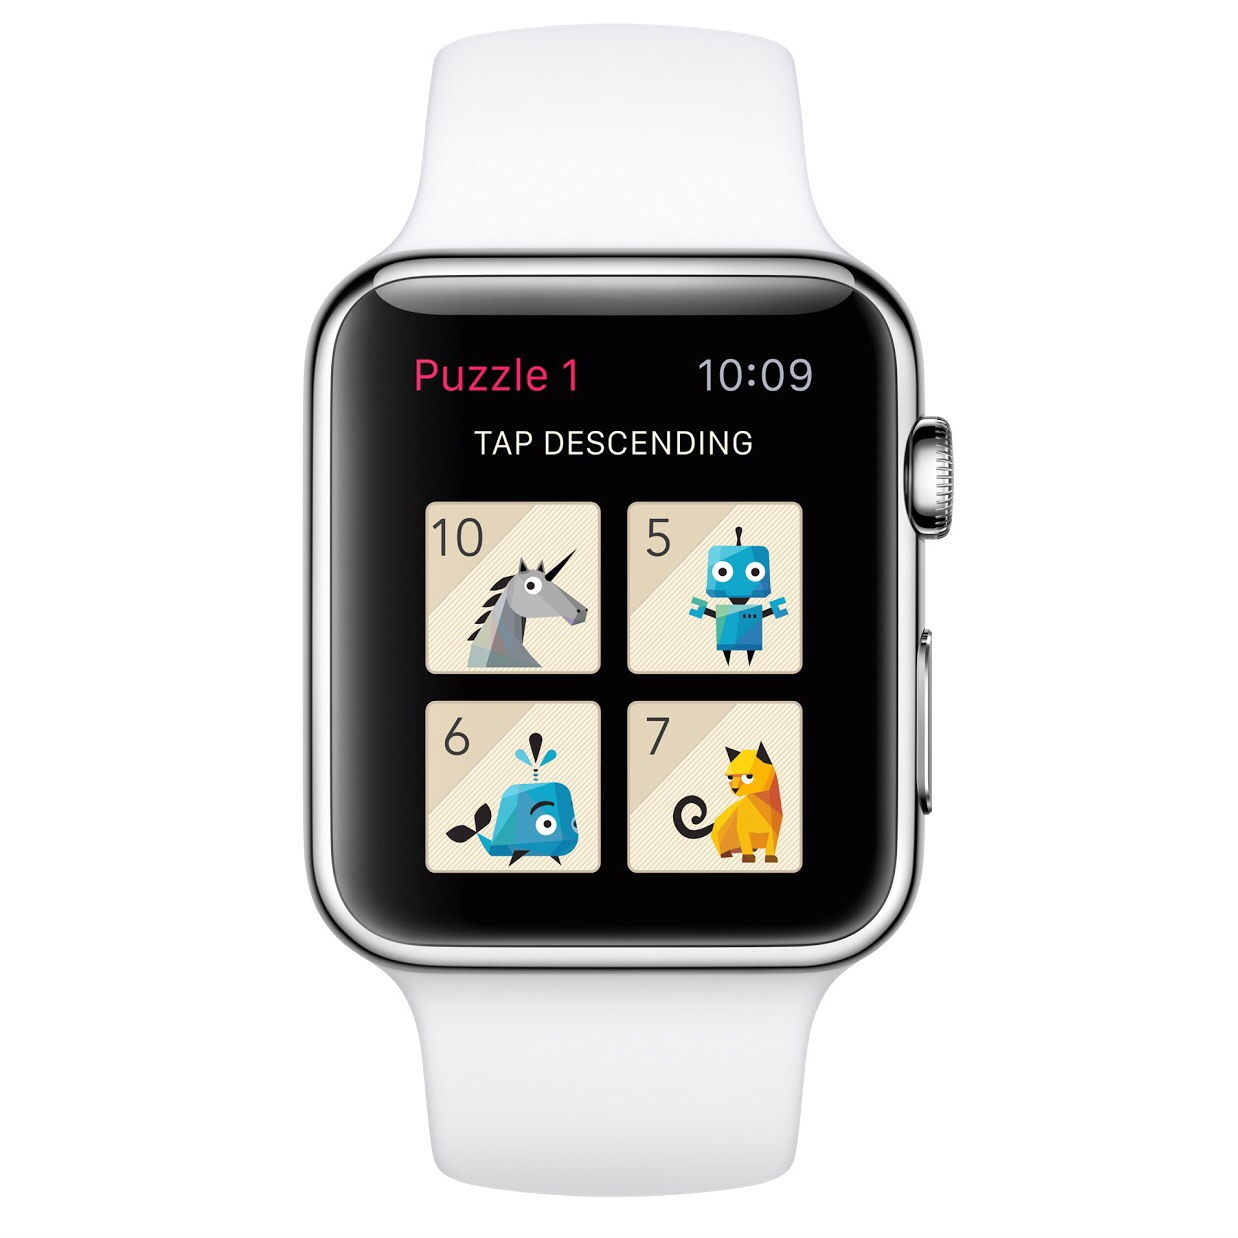 Rules! is the very first Apple Watch game to be released